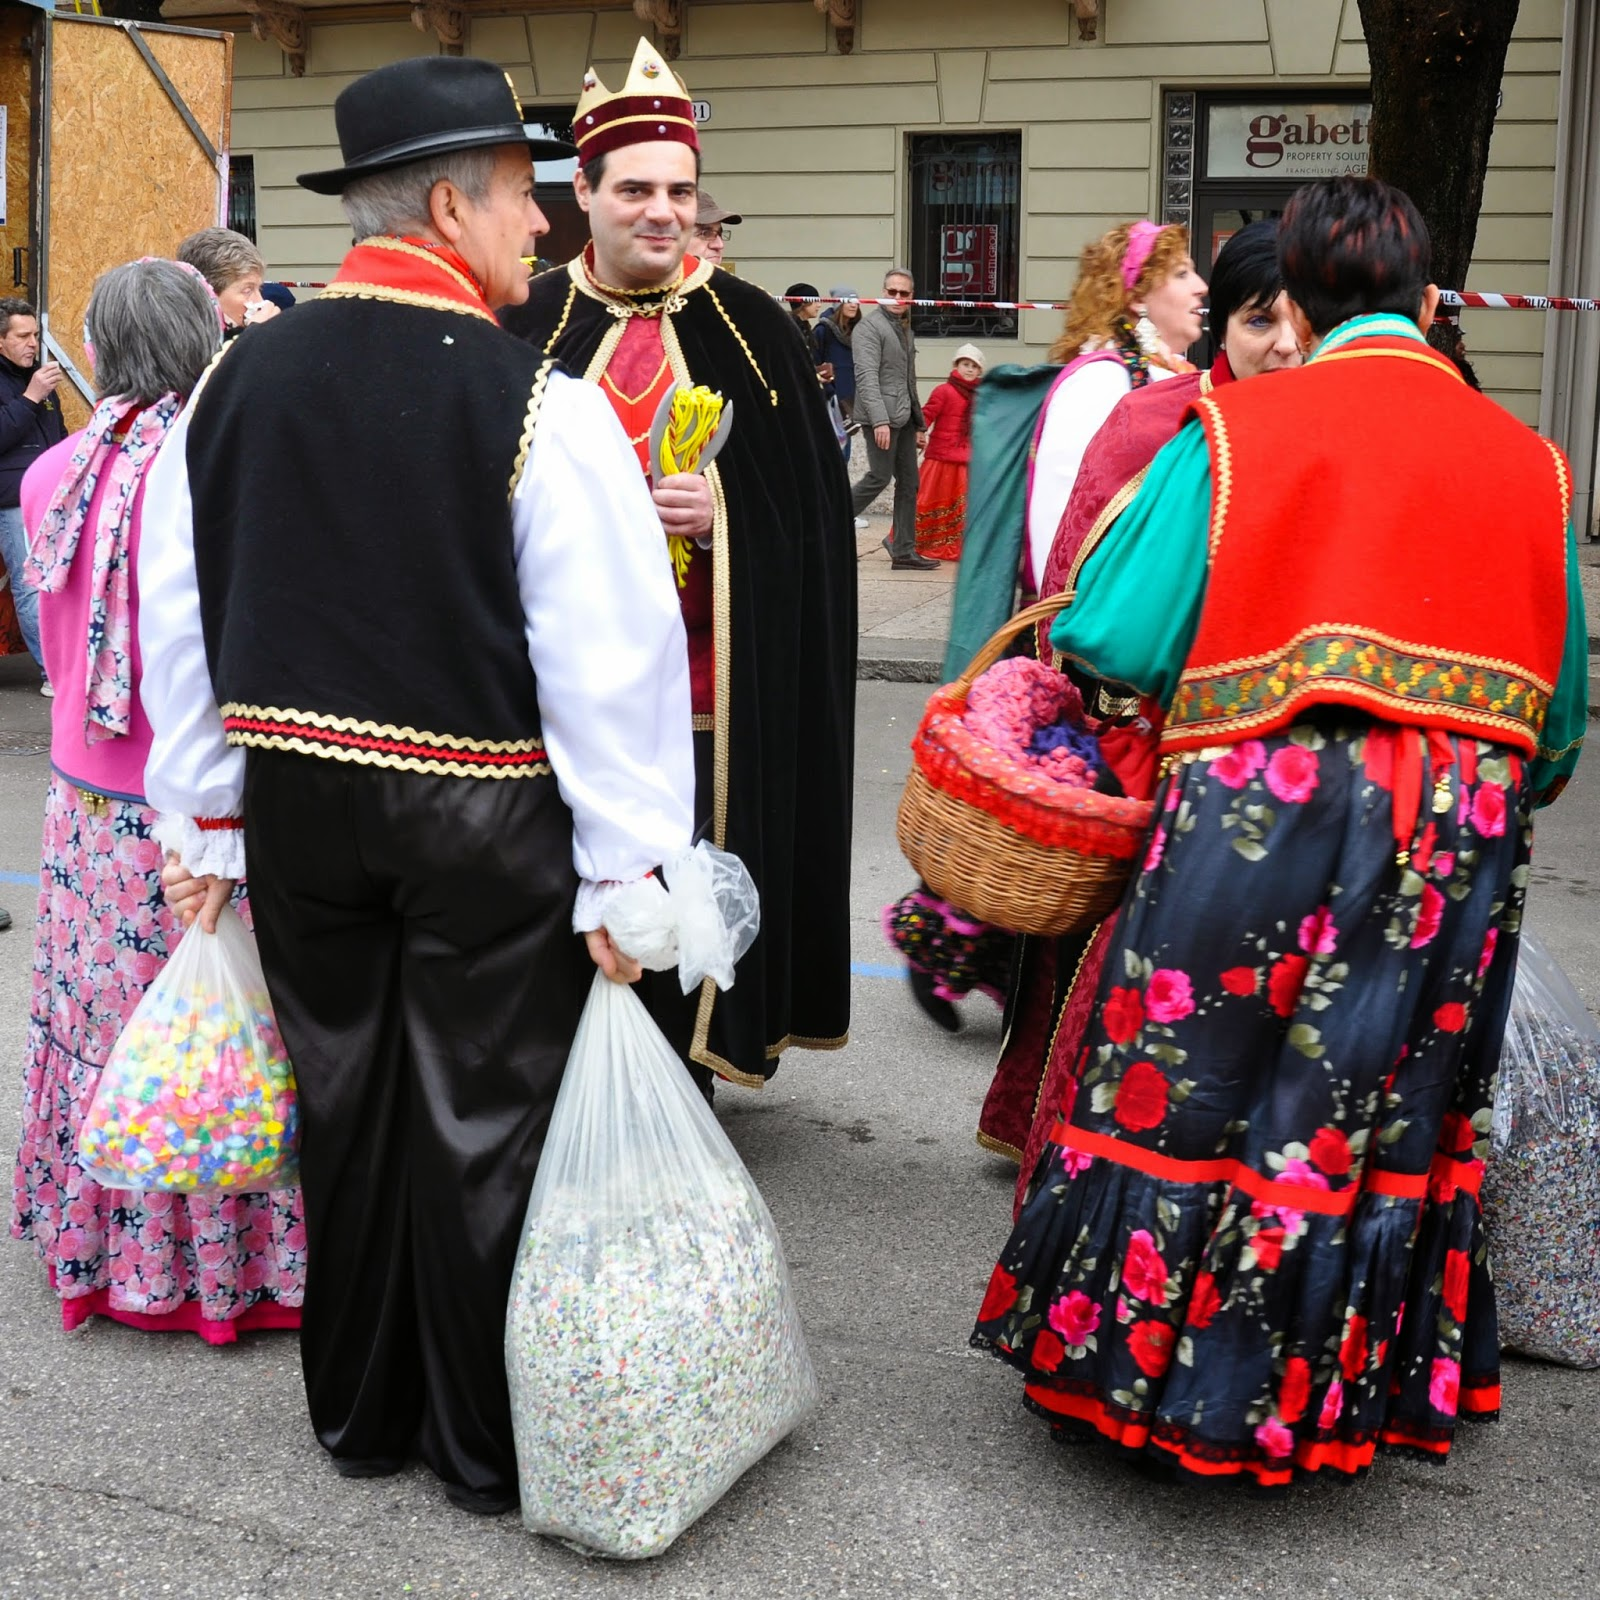 People in costume waiting for the parade in Verona on Venerdi Gnocolar to start